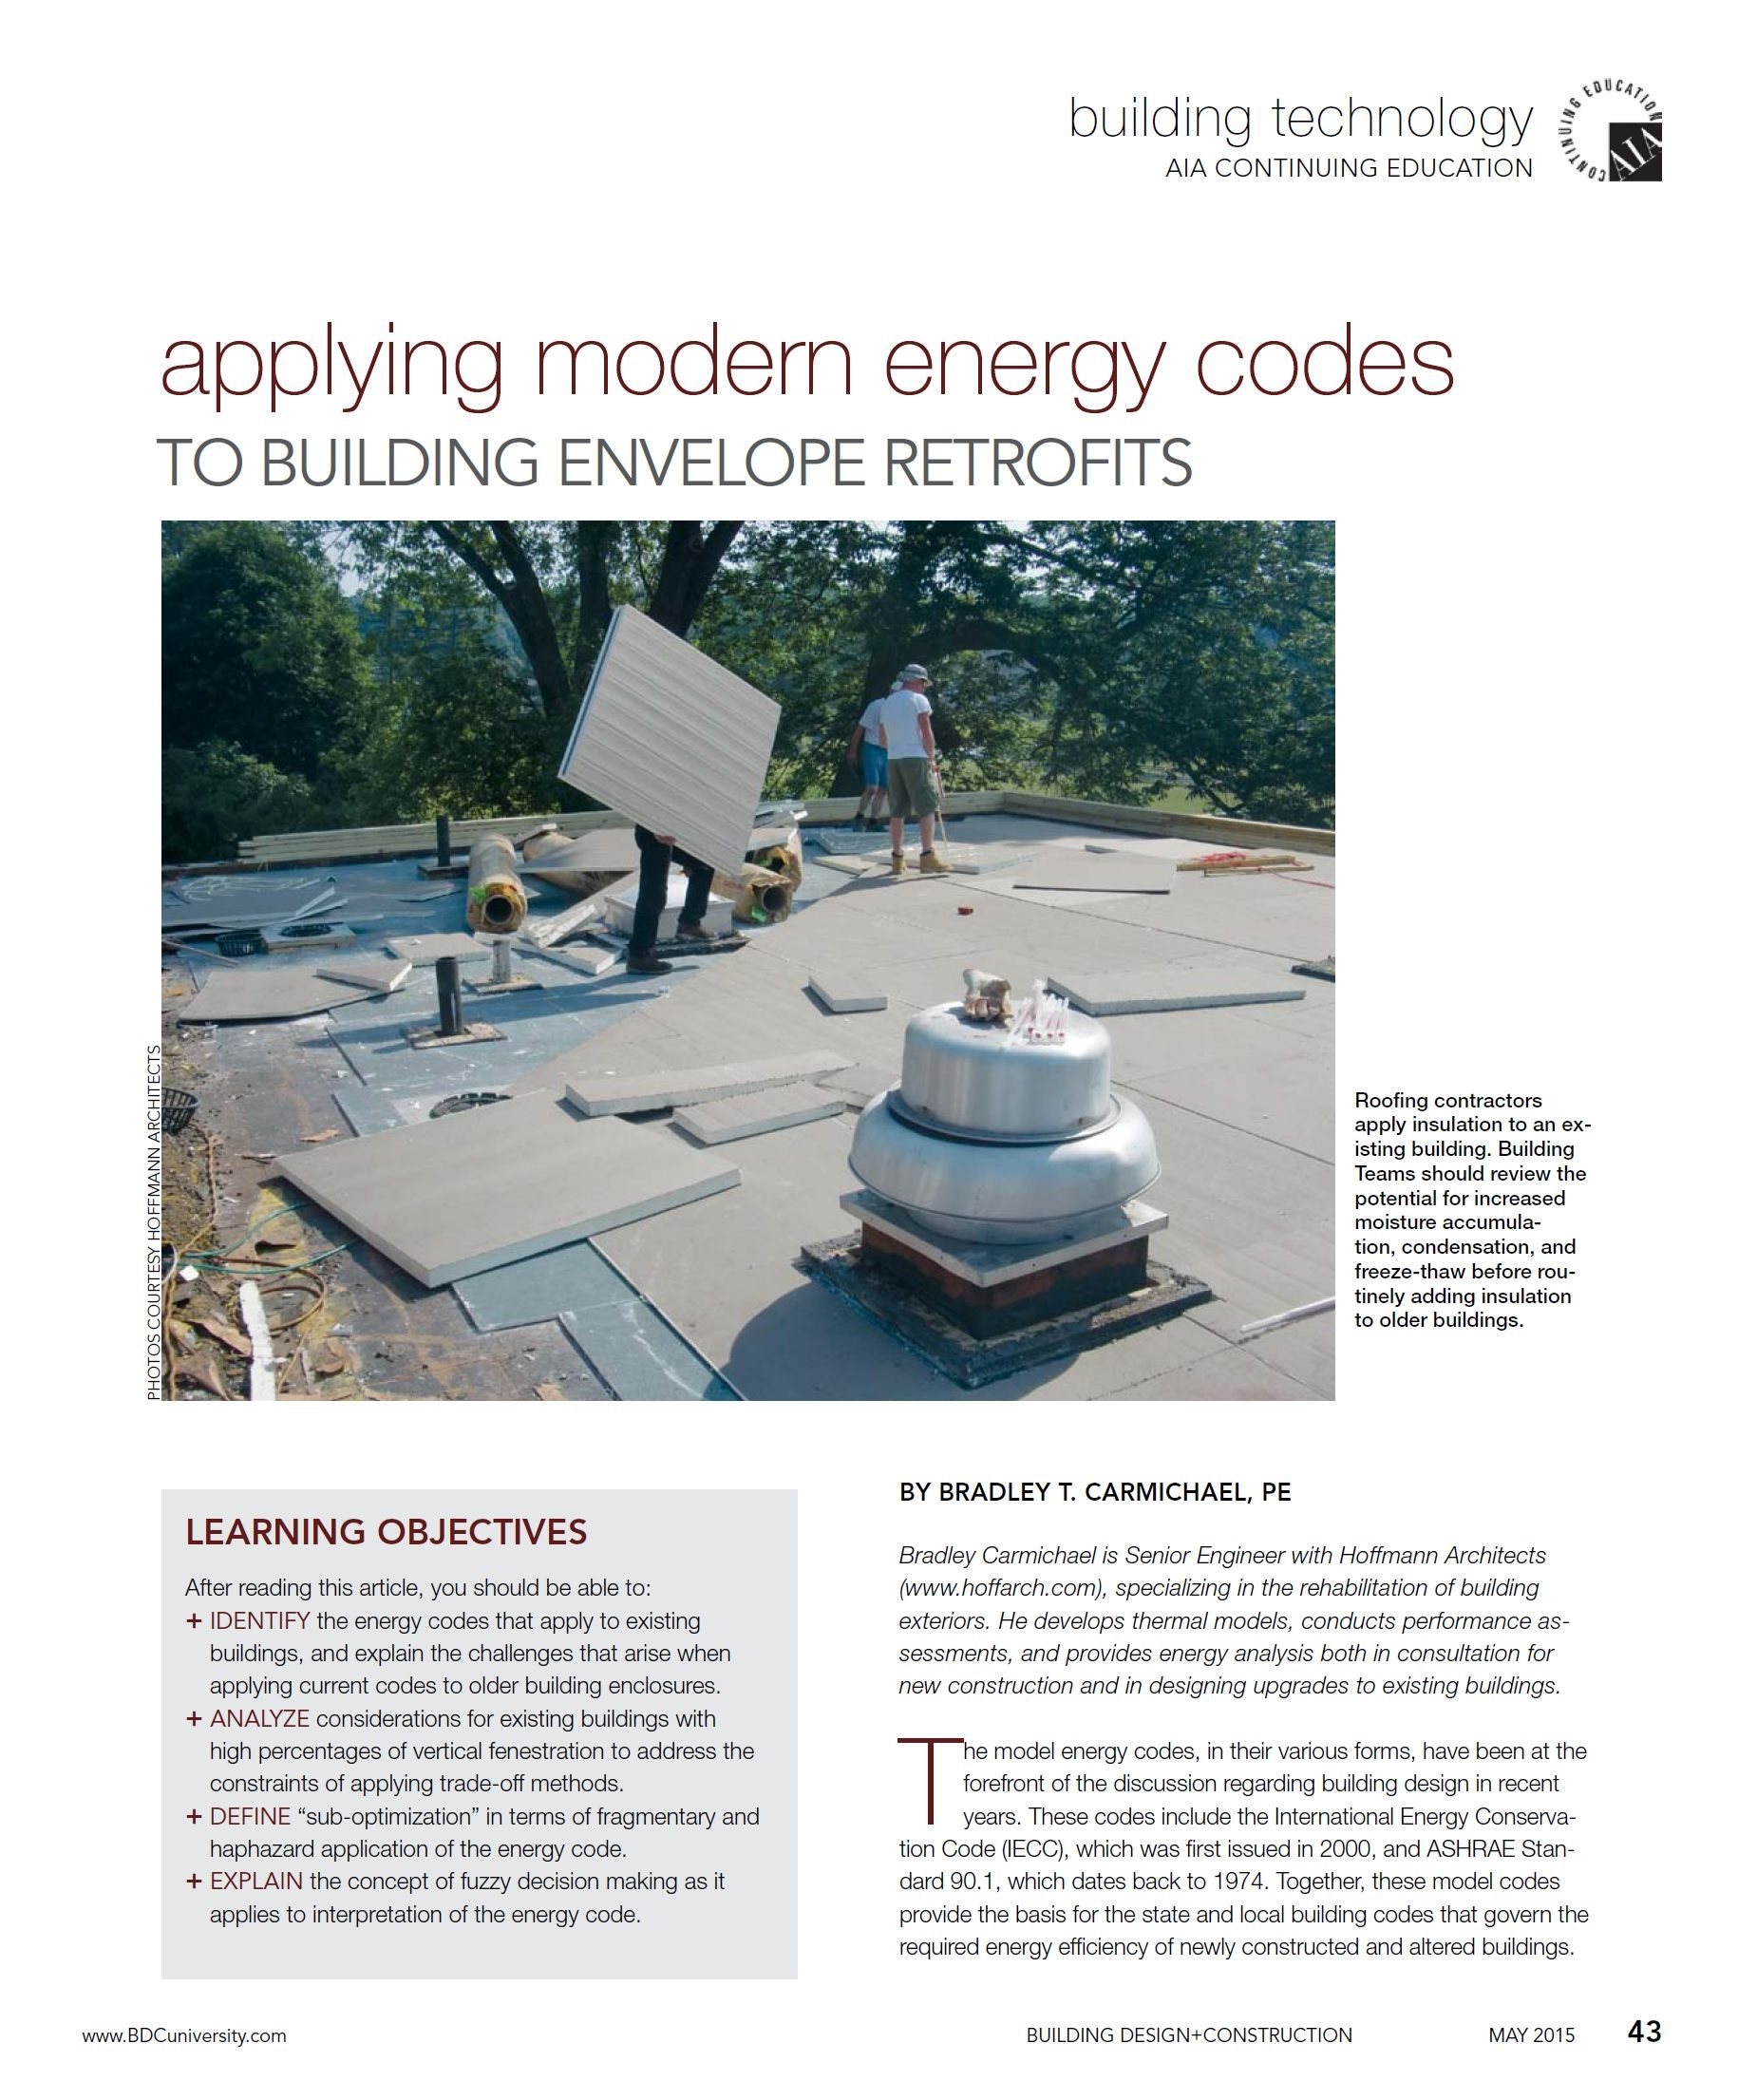 Applying Modern Energy Codes To Building Envelope Retrofits Building Design Construction May 2015 Building Design Sustainable Design Roofing Contractors